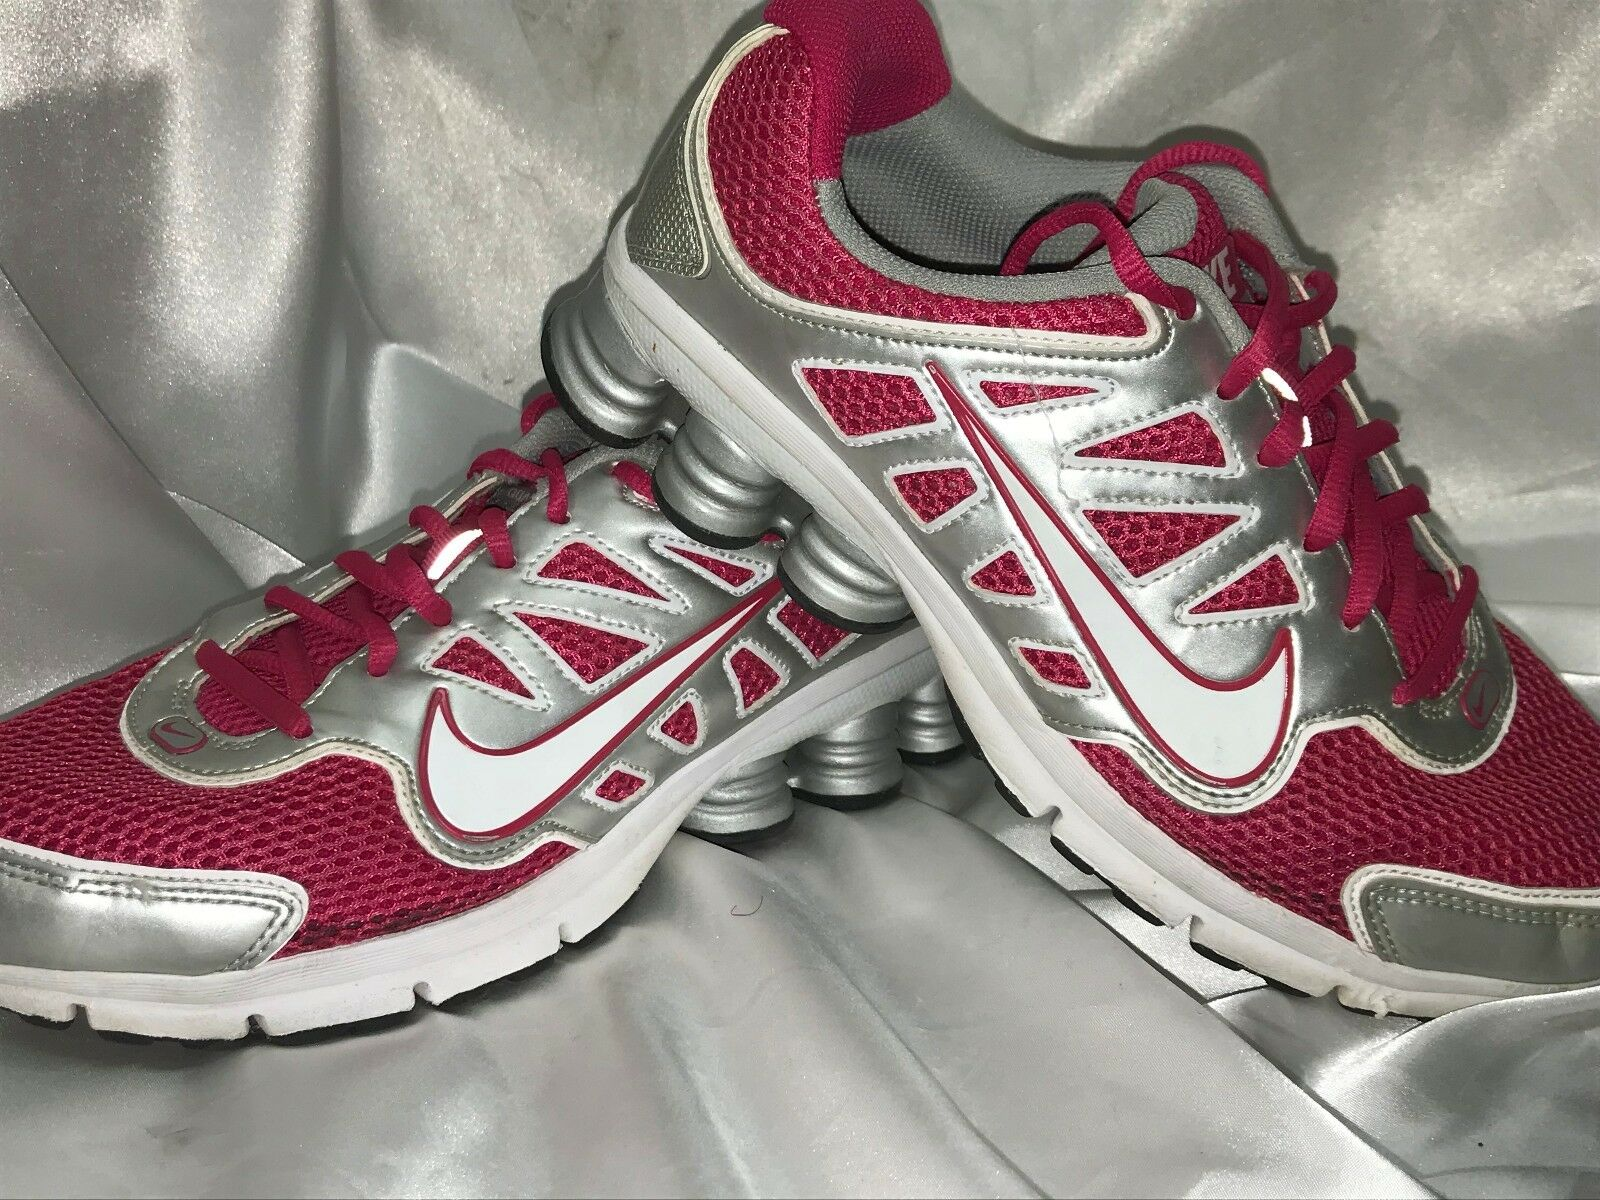 NIKE SHOX QUALIFY 2+ RUNNING SNEAKERS Pink Gray White 442115-616 WOMEN Sz 8 The latest discount shoes for men and women